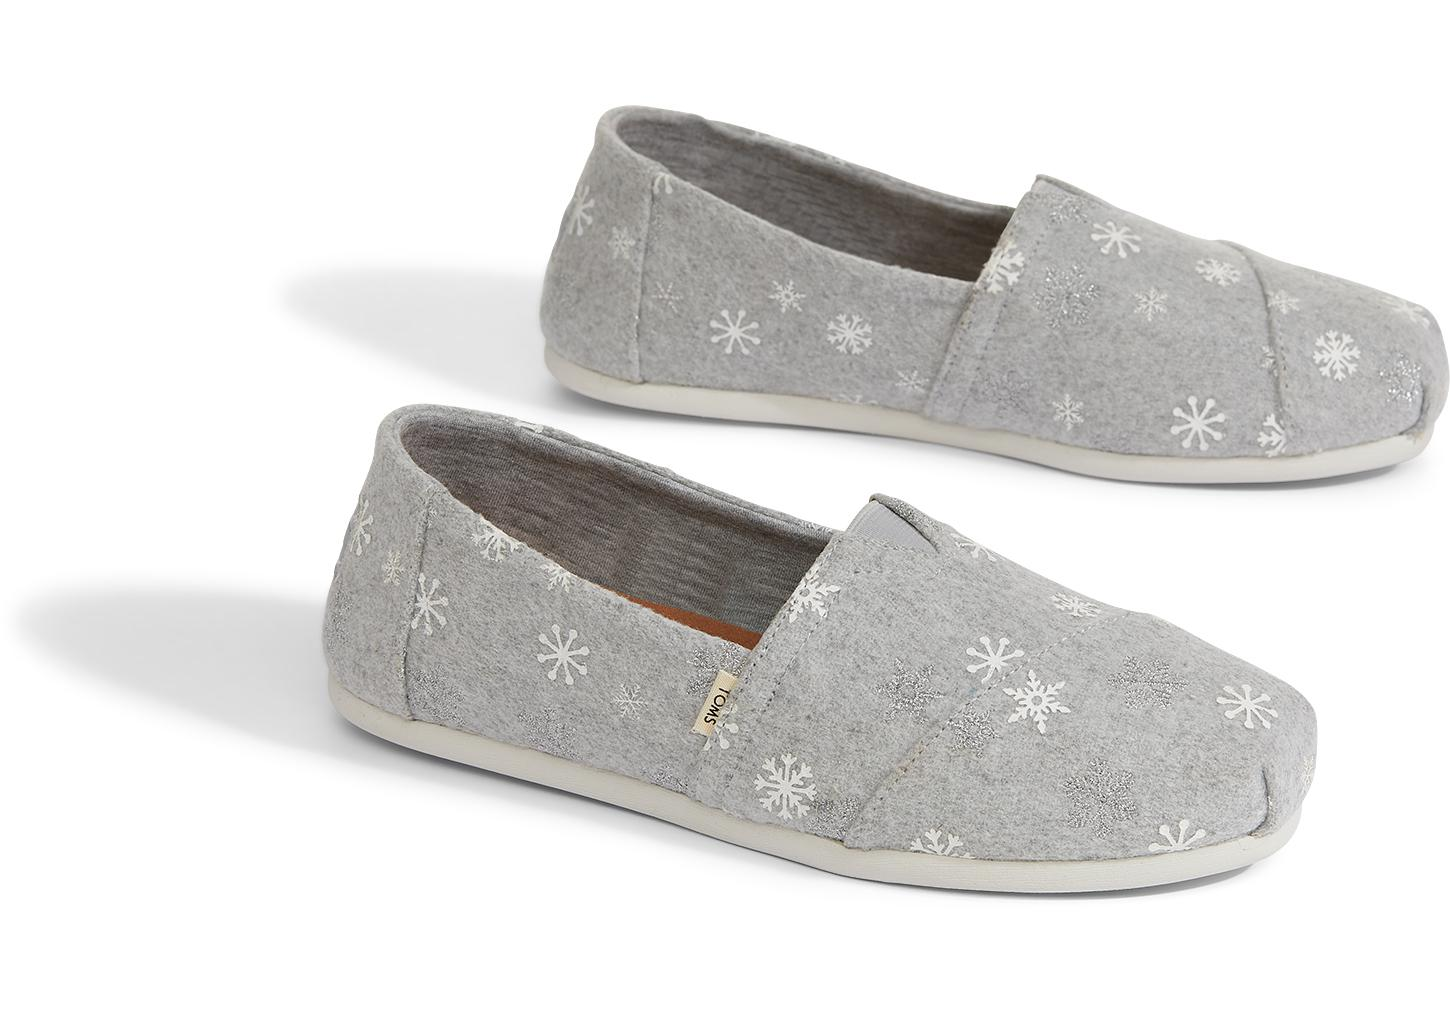 541ae50c43e TOMS - Gray Drizzle Grey Embroidered Snowflakes Women s Classics - Lyst.  View fullscreen